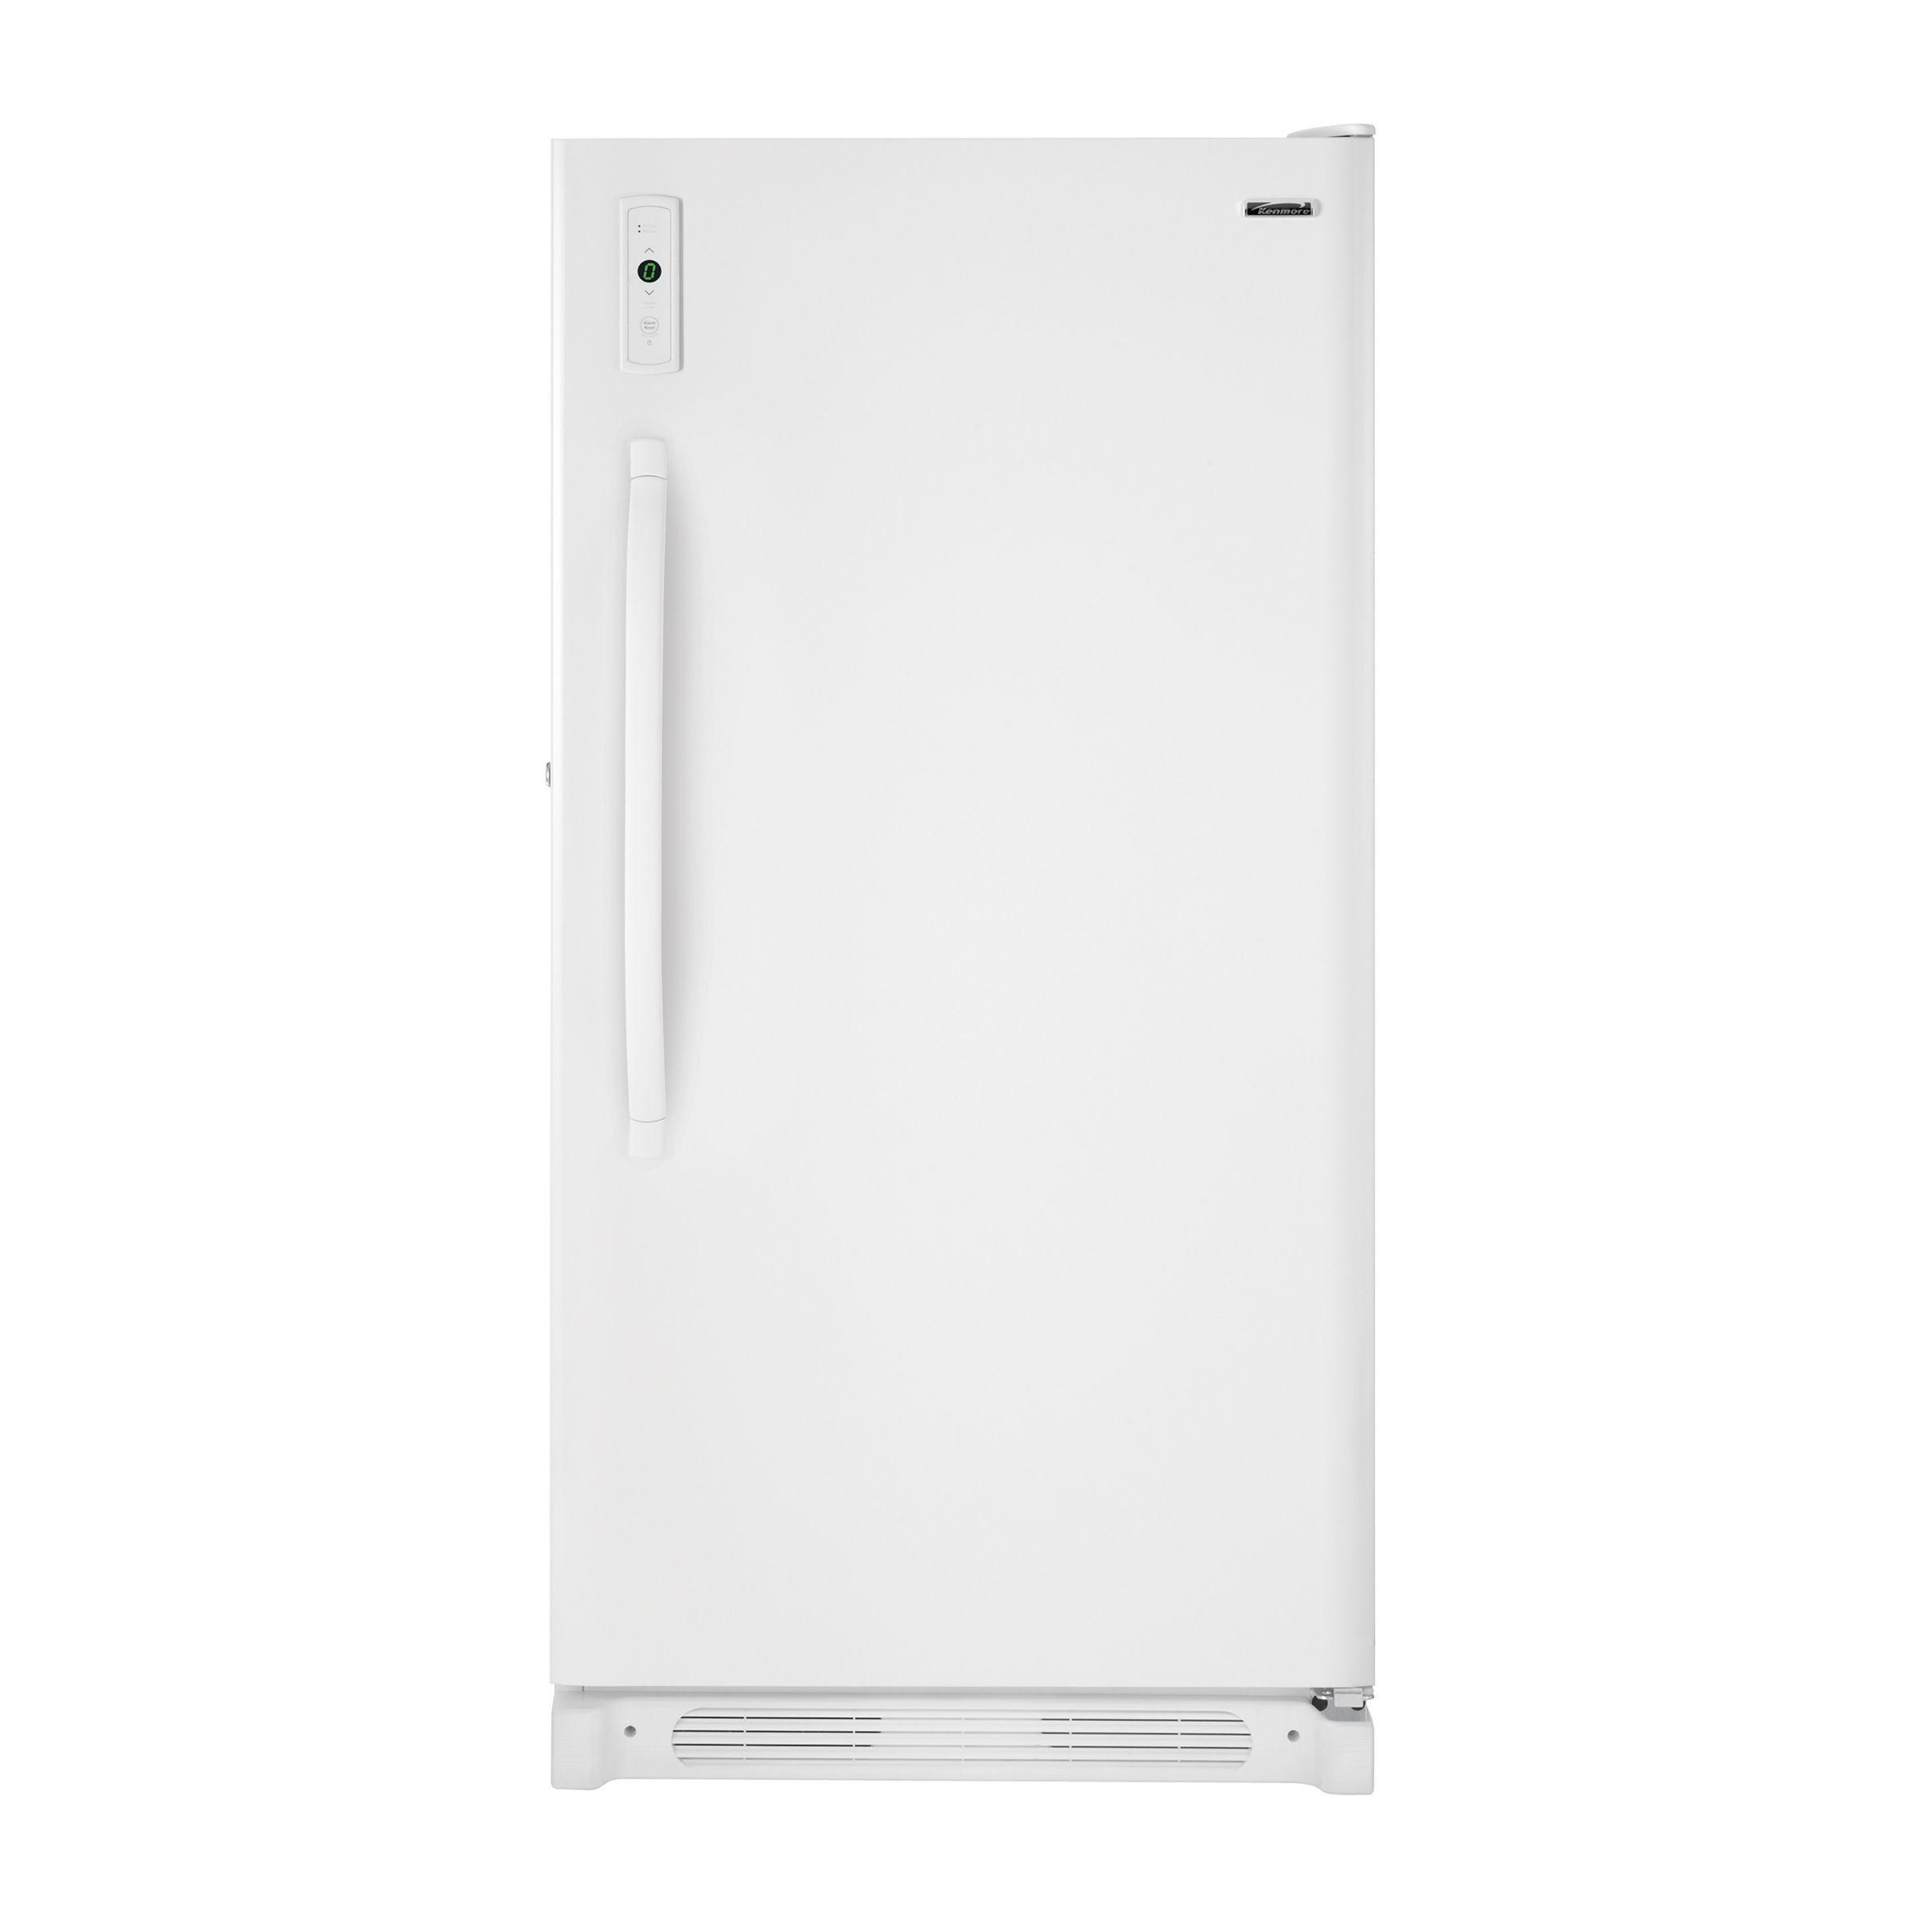 small resolution of kenmore freezer model 253 wiring diagram wiring diagram m9 sears freezer wiring diagram